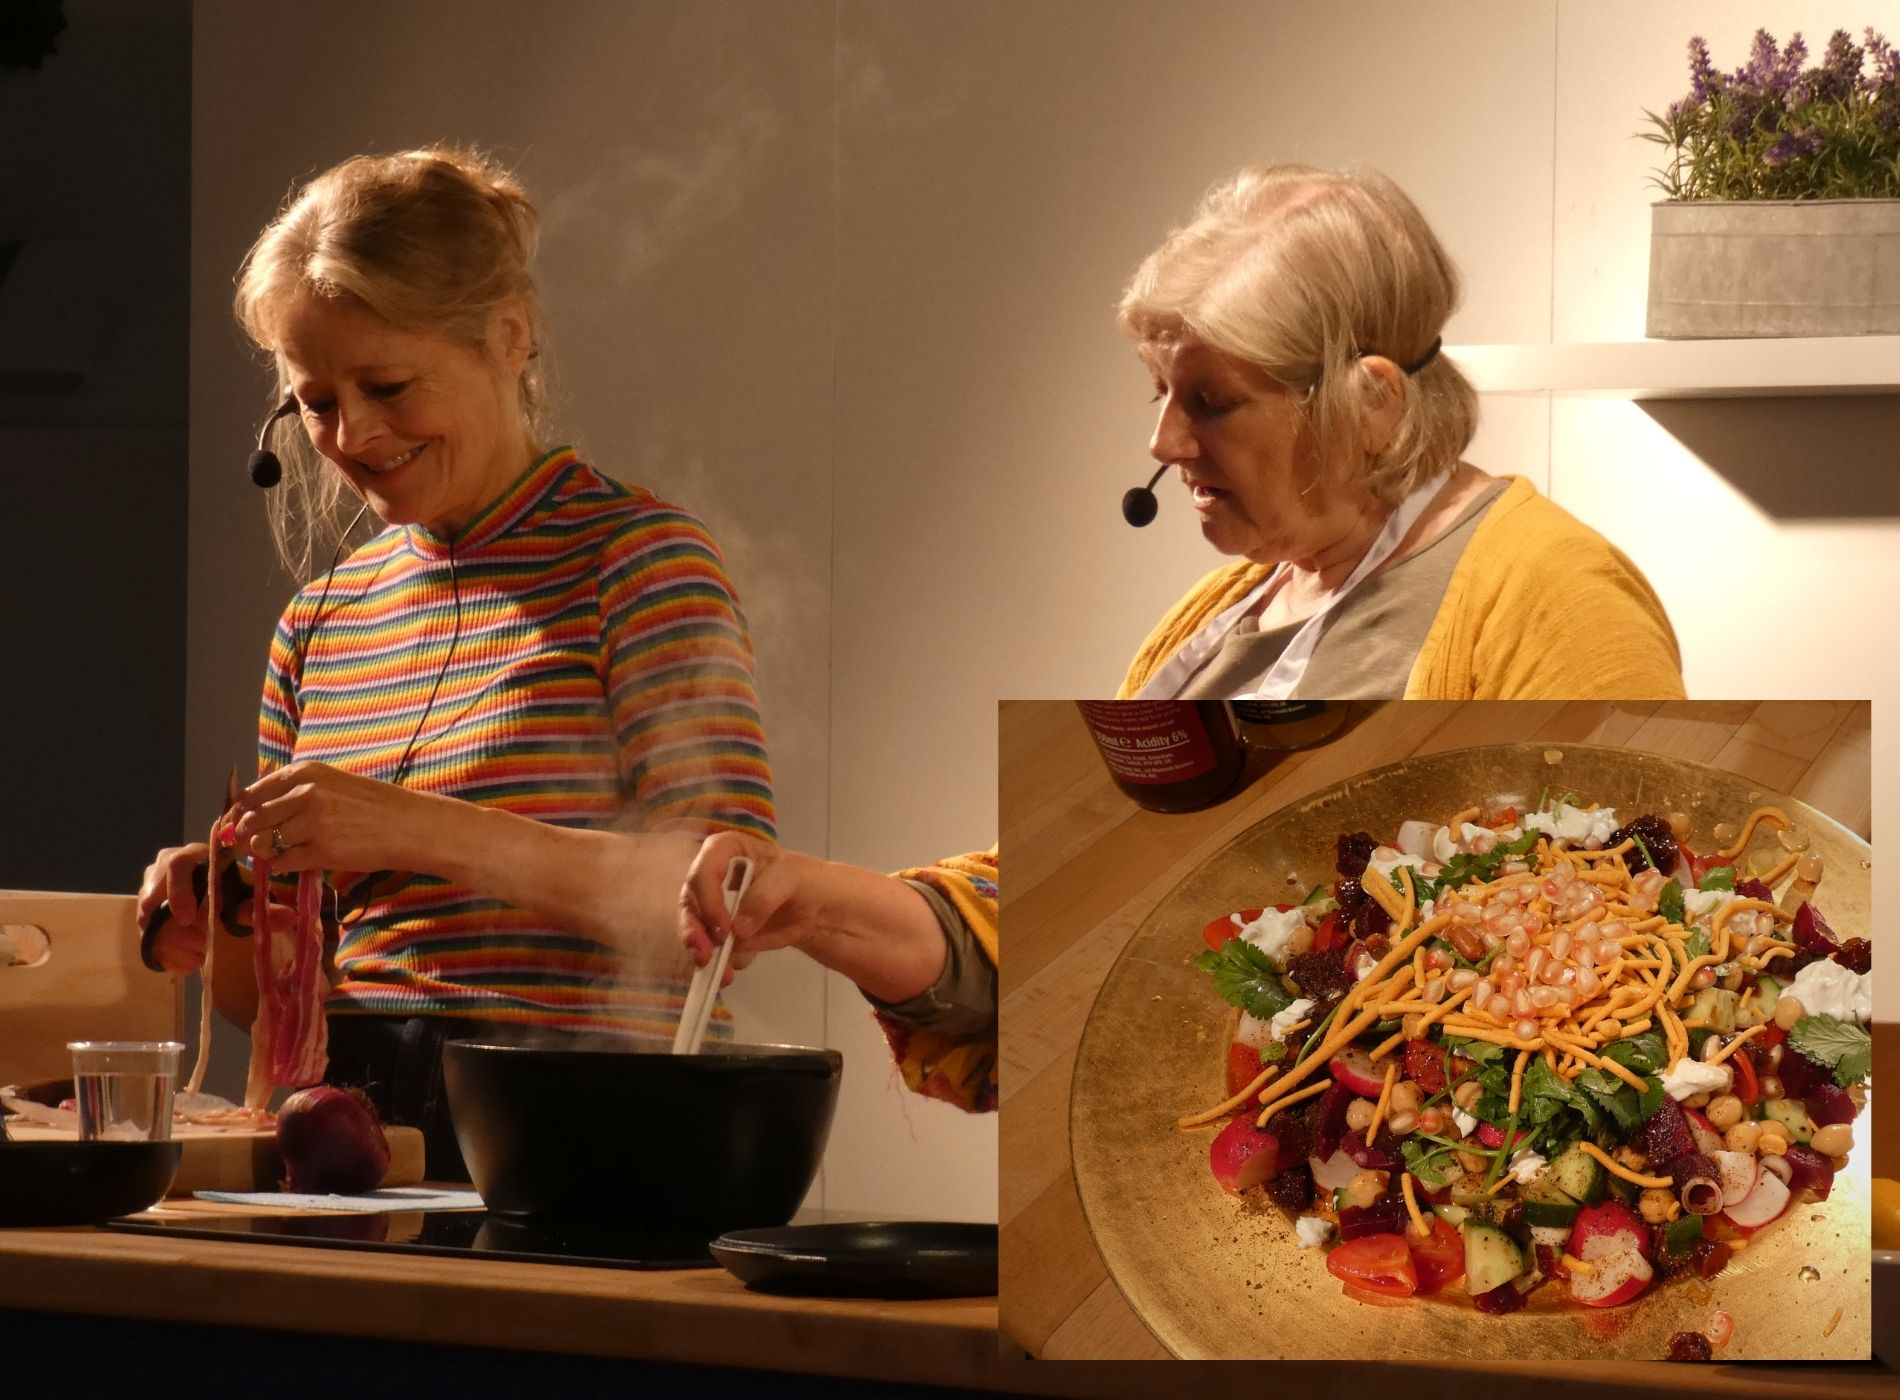 Xanthe, Roz and salad